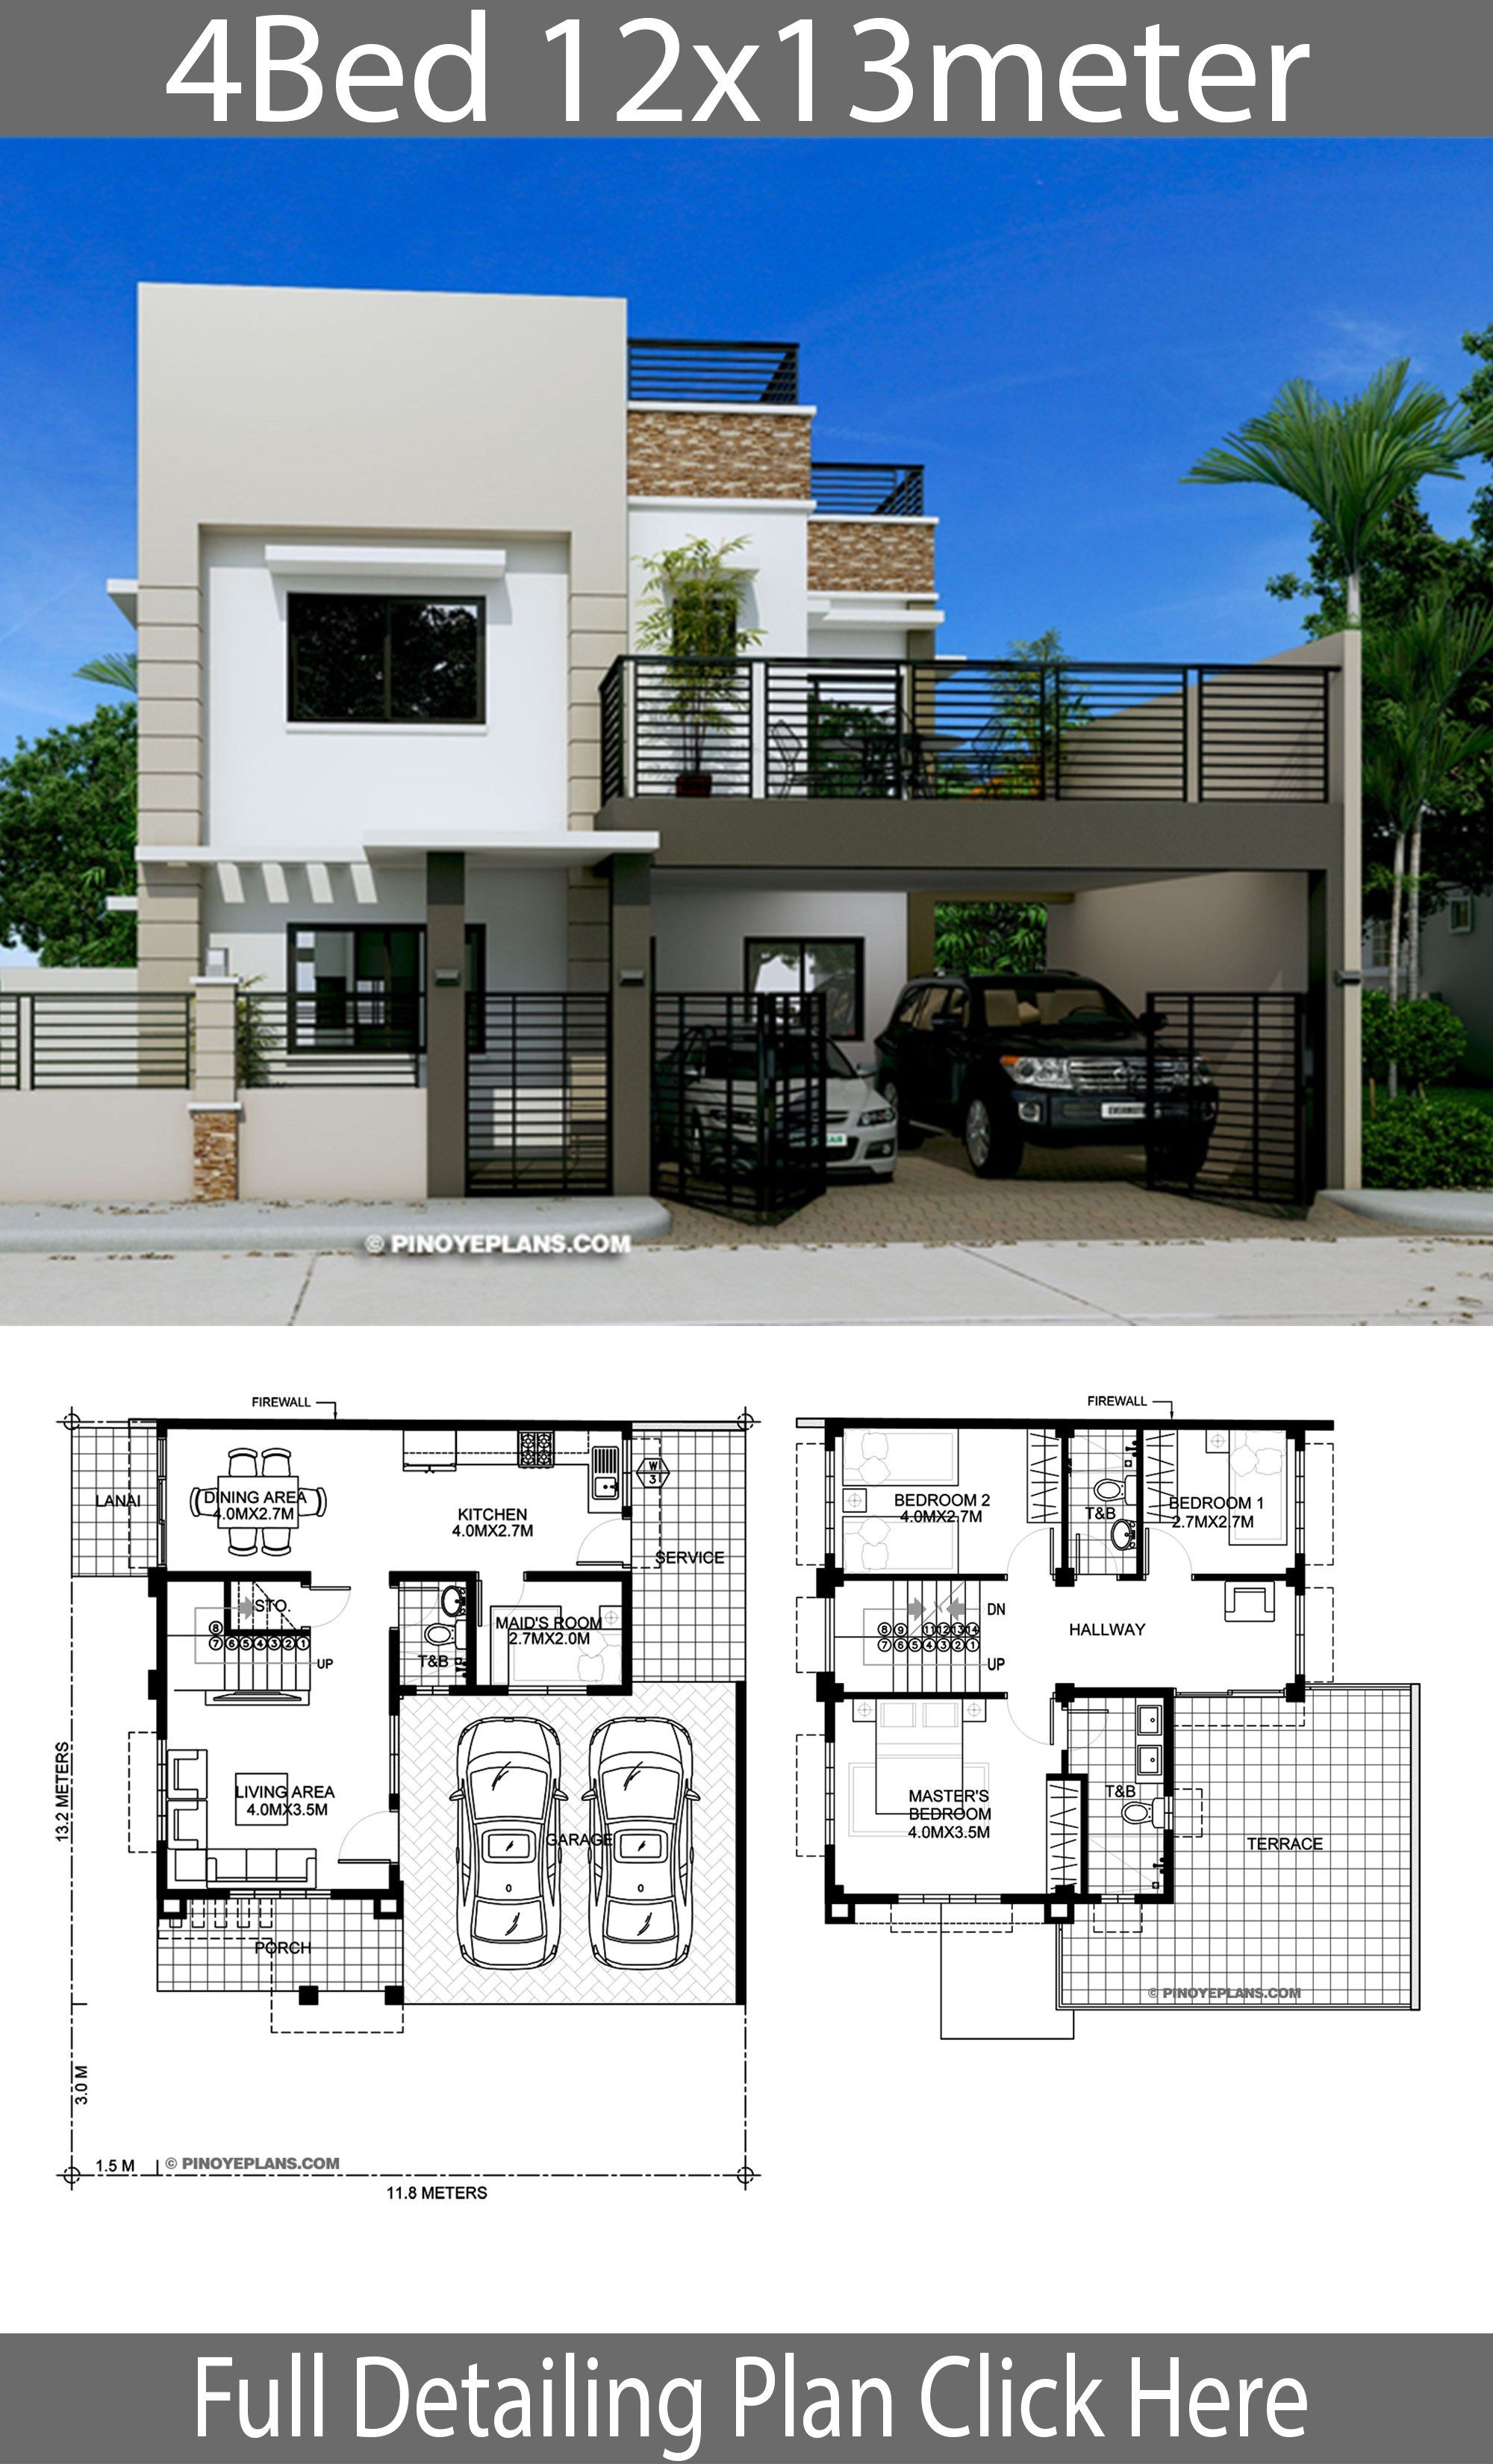 Home Design 12x13m With 4 Bedrooms Home Design With Plan Contemporary House Plans Bungalow House Design Duplex House Design